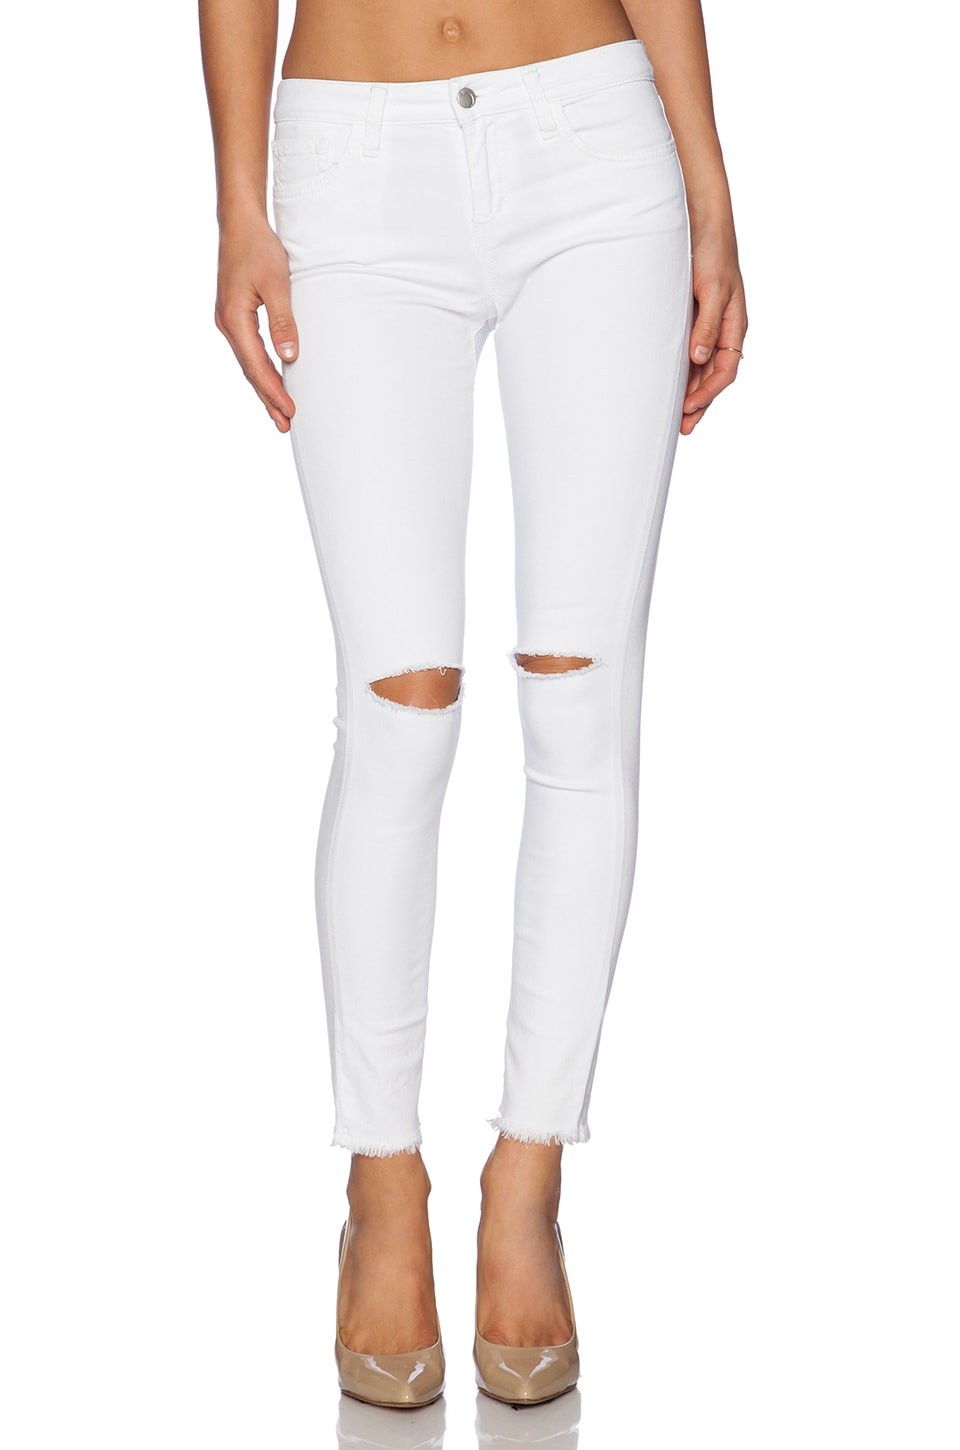 Joe's Jeans Stay Spotless Finn Skinny Ankle in Optic White | REVOLVE